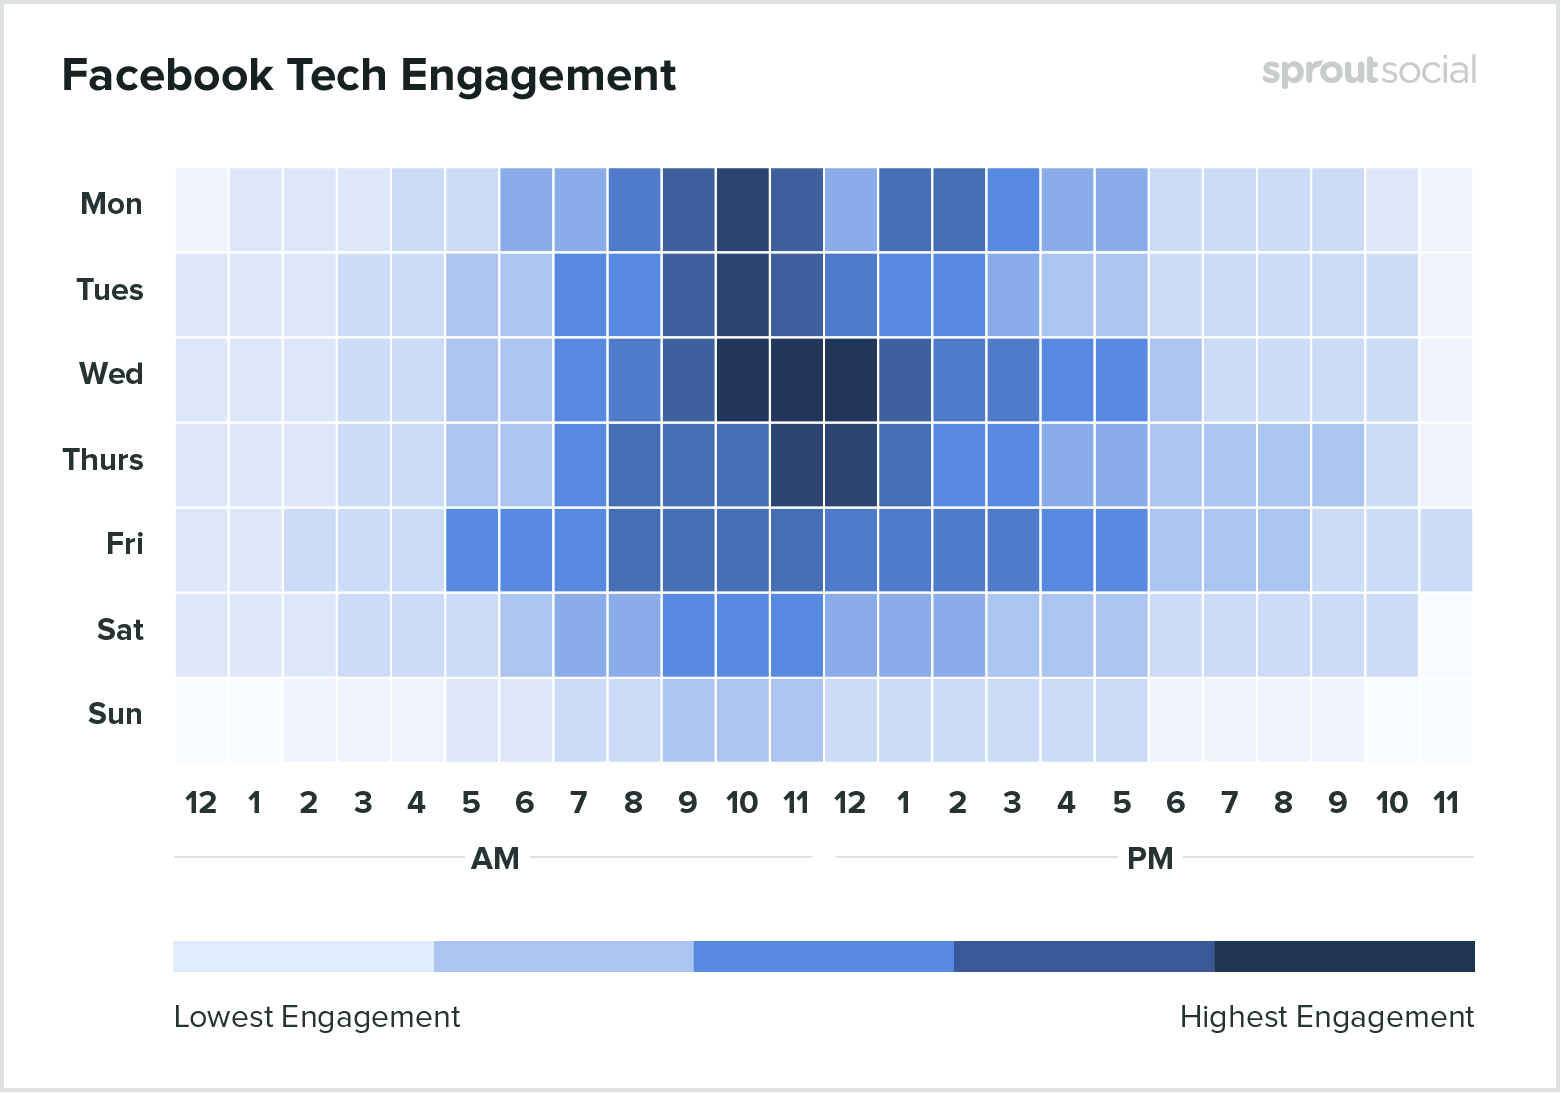 Best times to post on Facebook for tech